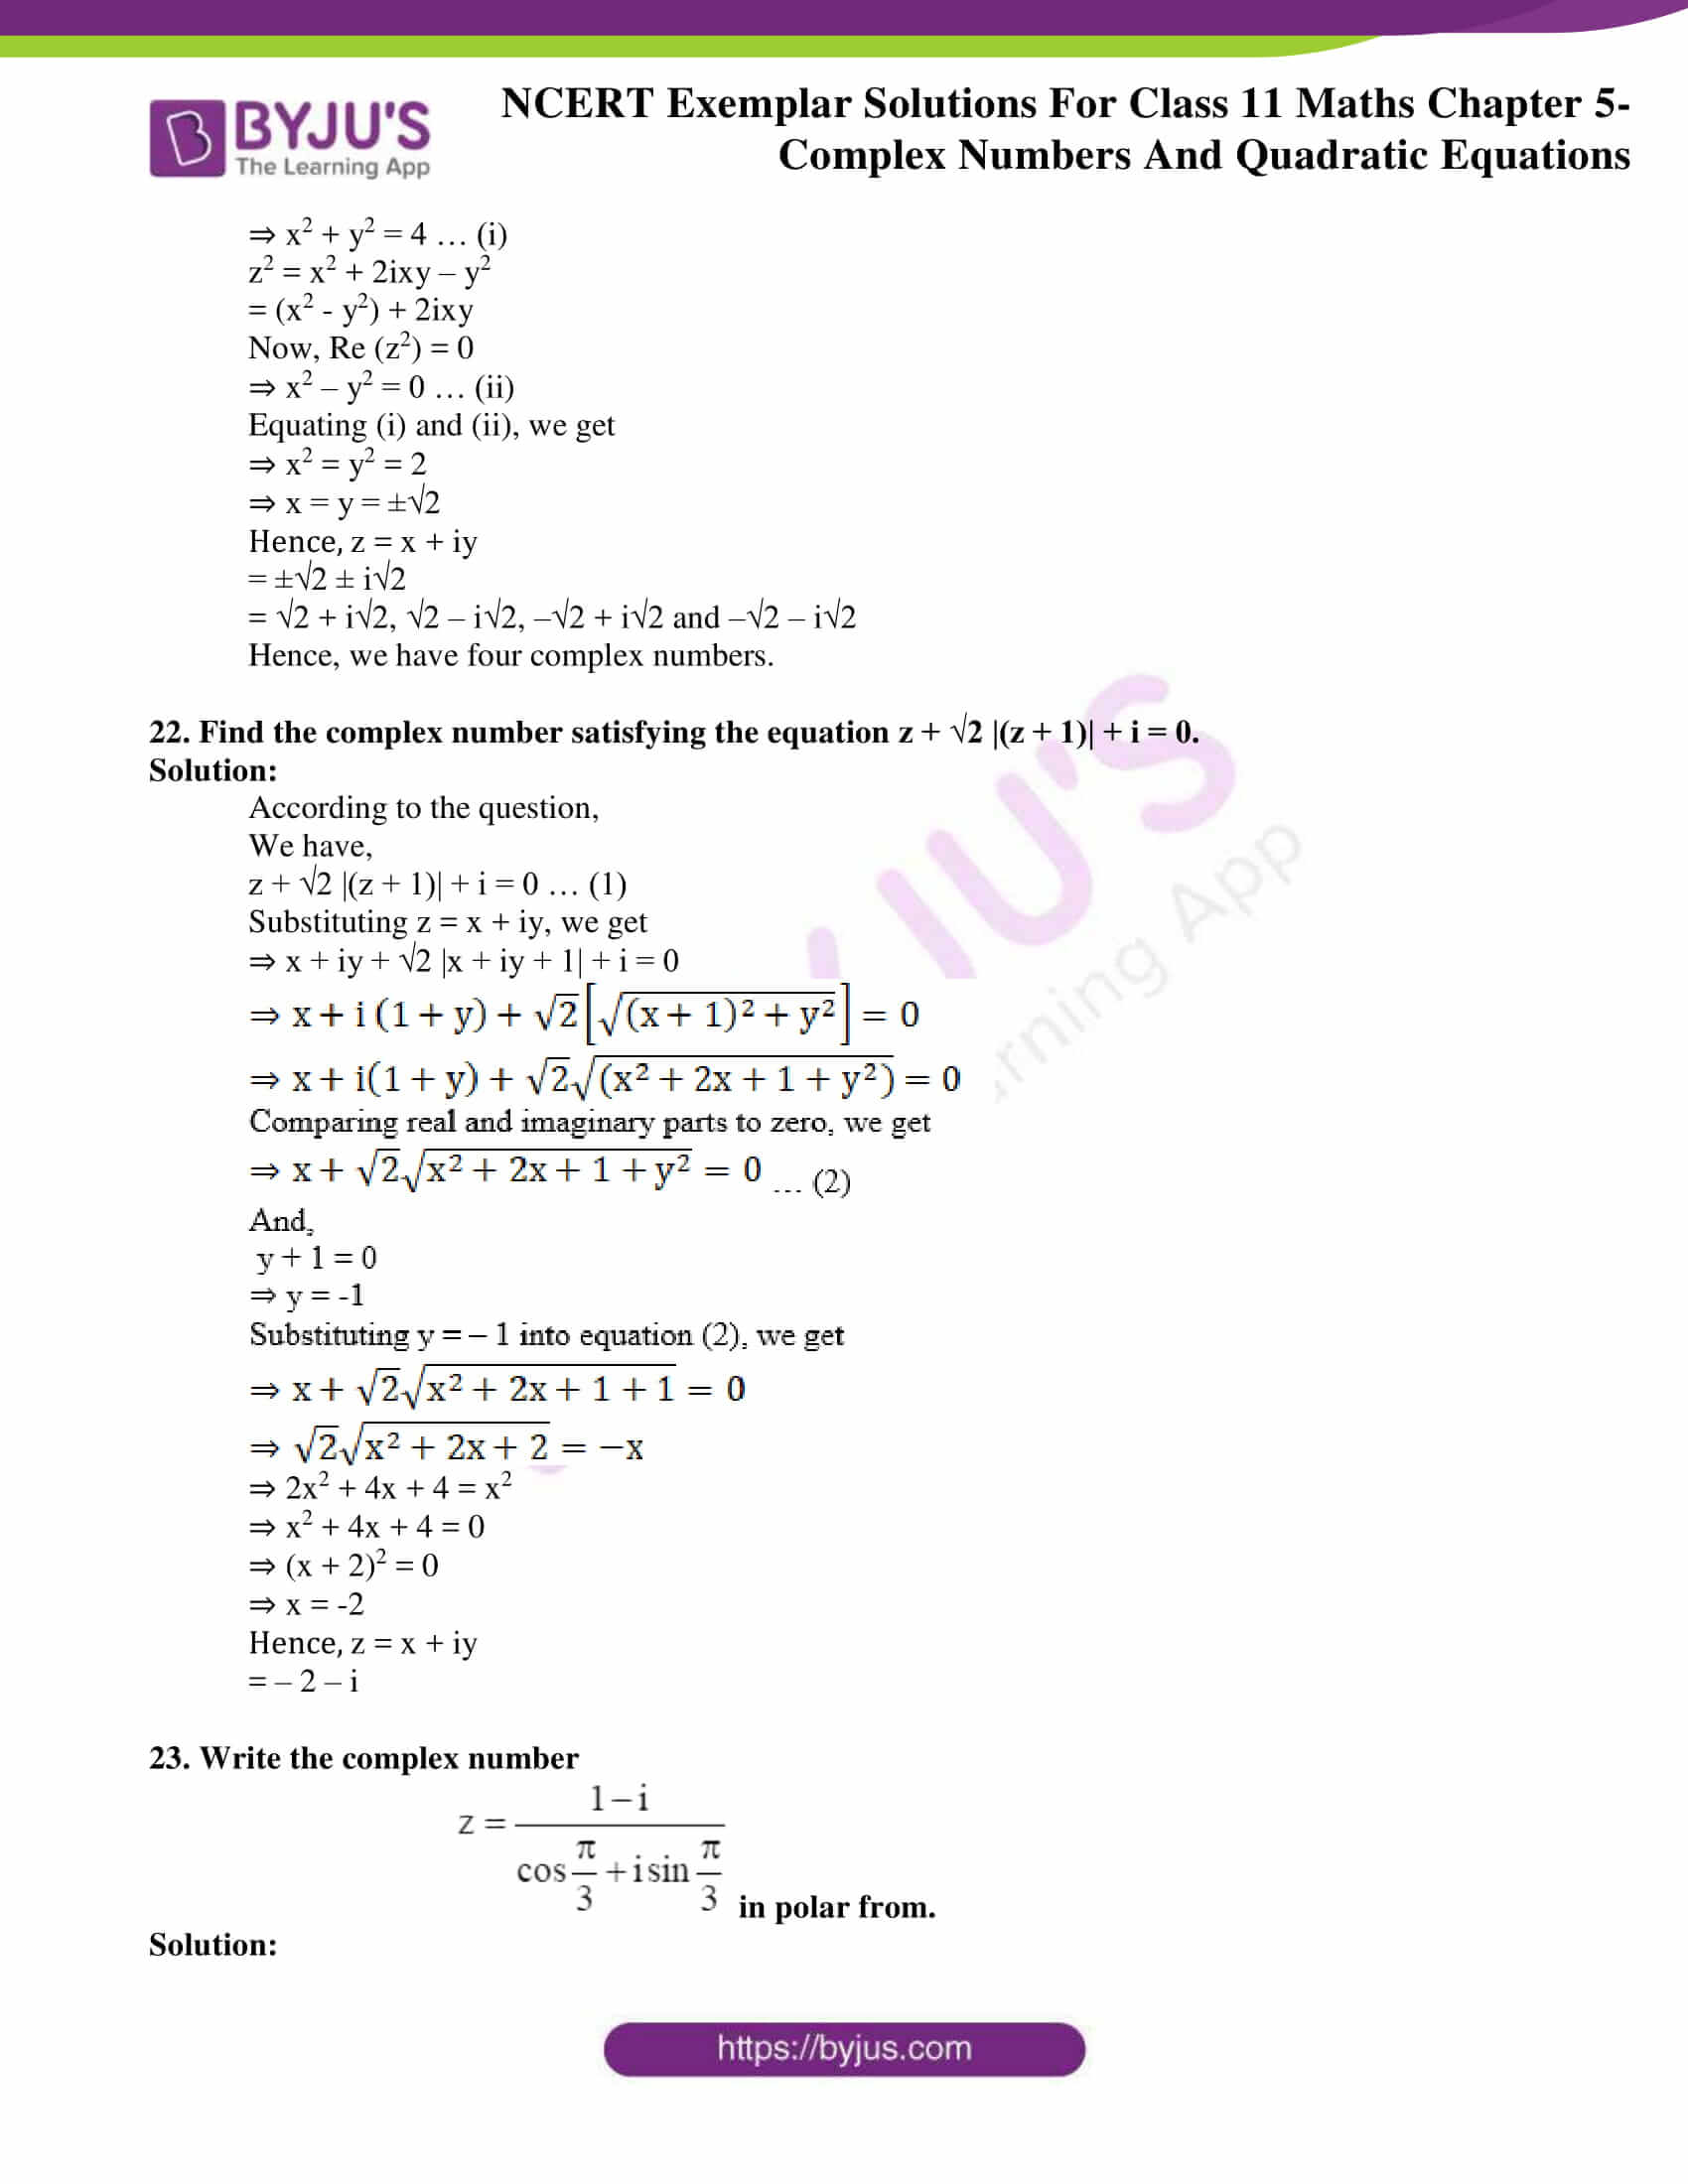 ncert exemplar solutions for class 11 maths chapter 5